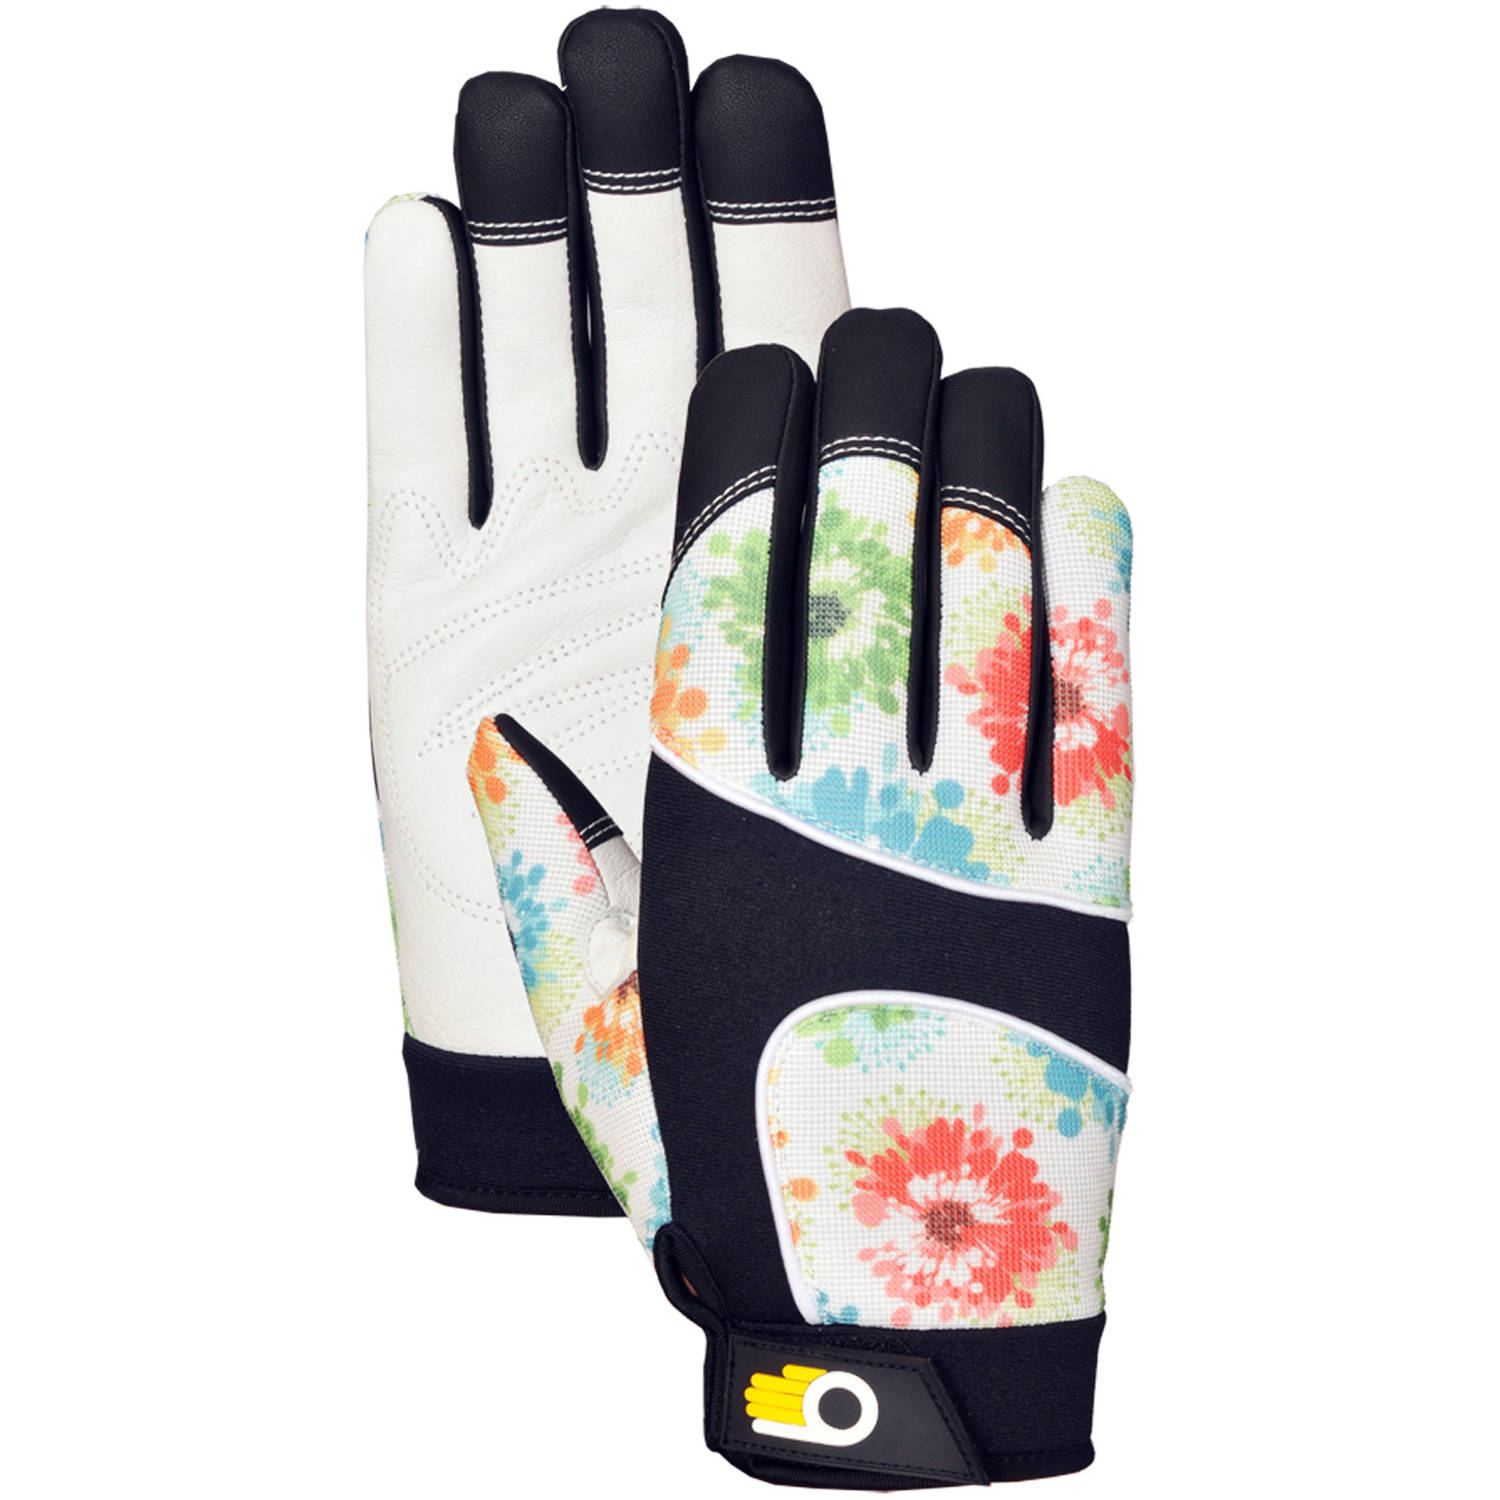 Bellingham Glove C7781S Small Women's Floral Performance Gloves